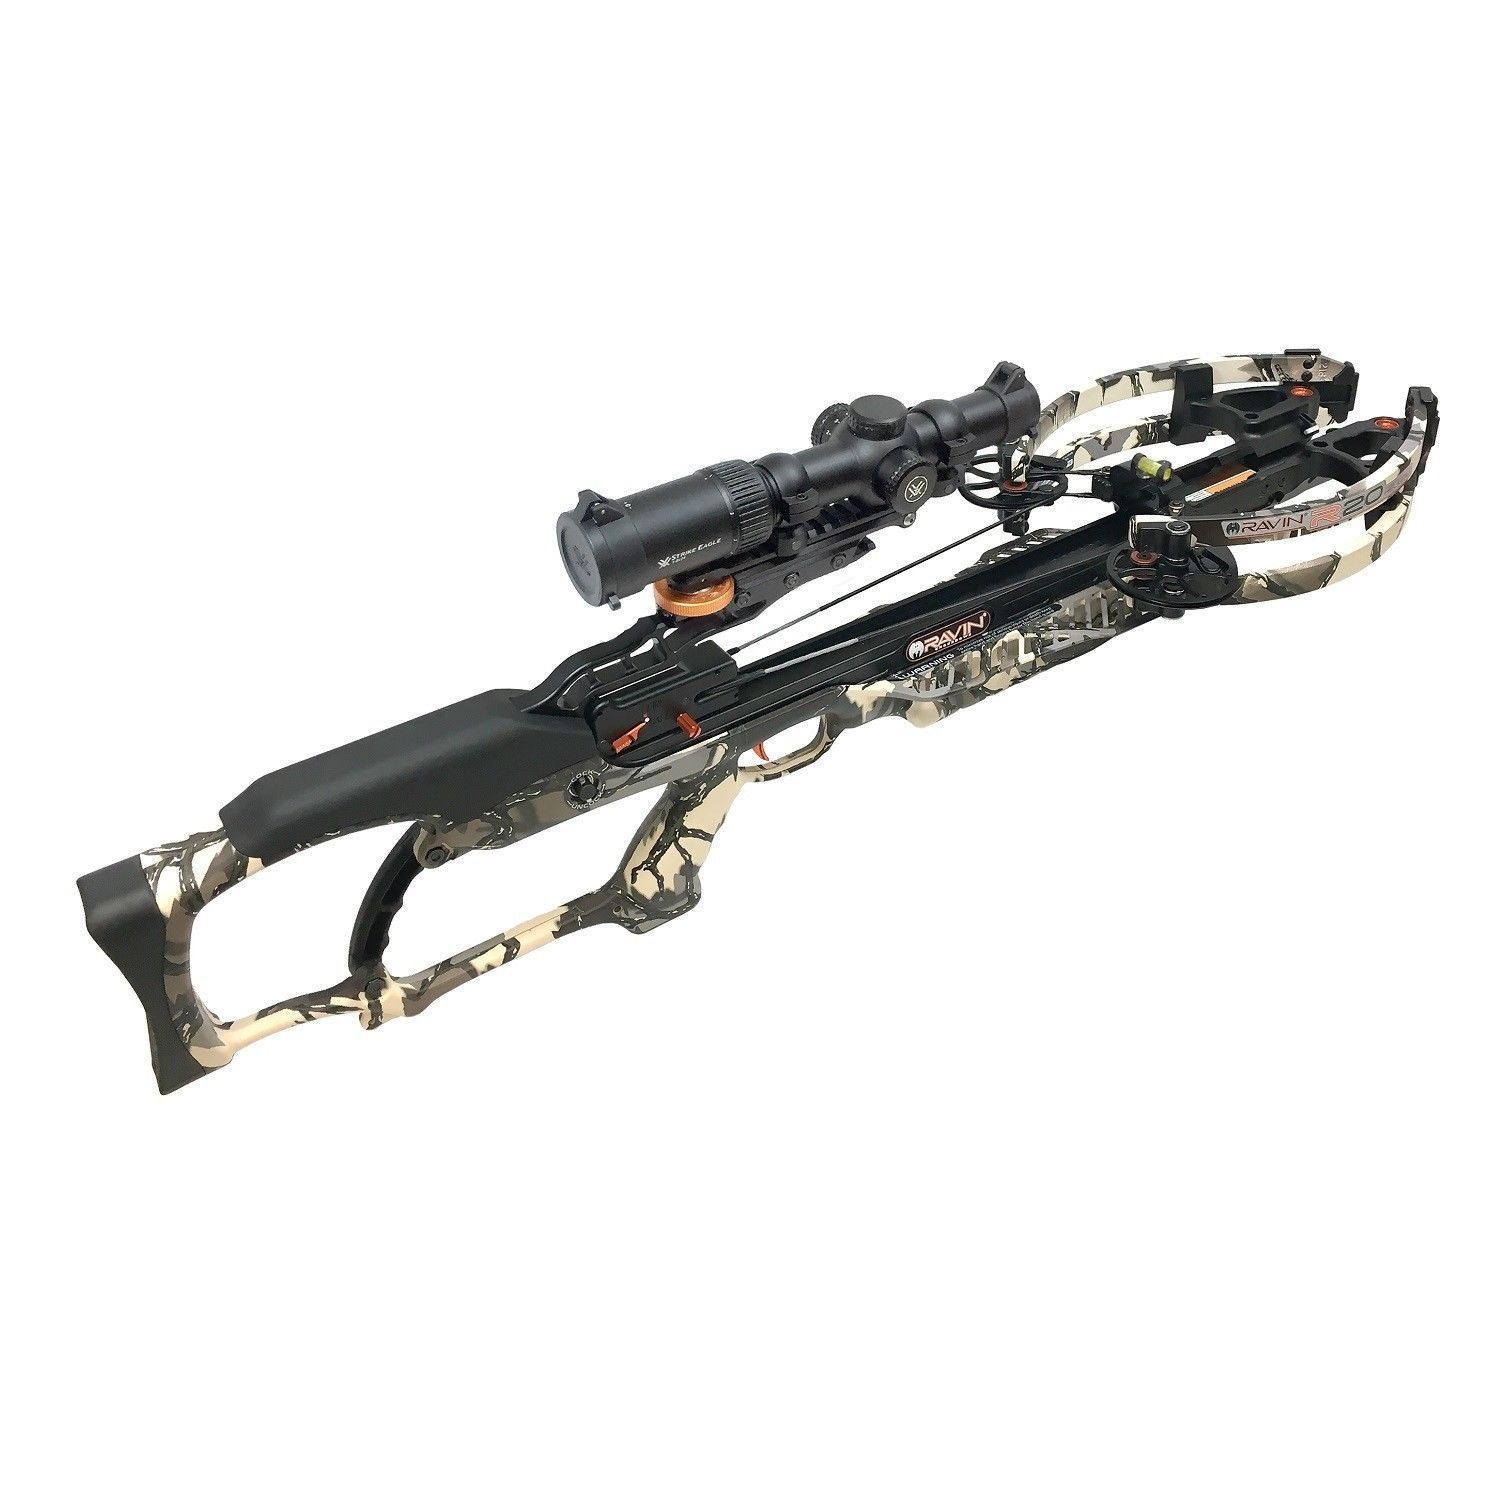 Ravin Crossbows R022 Camo R20 Sniper Crossbow Package w/Vortex Scope-NEW